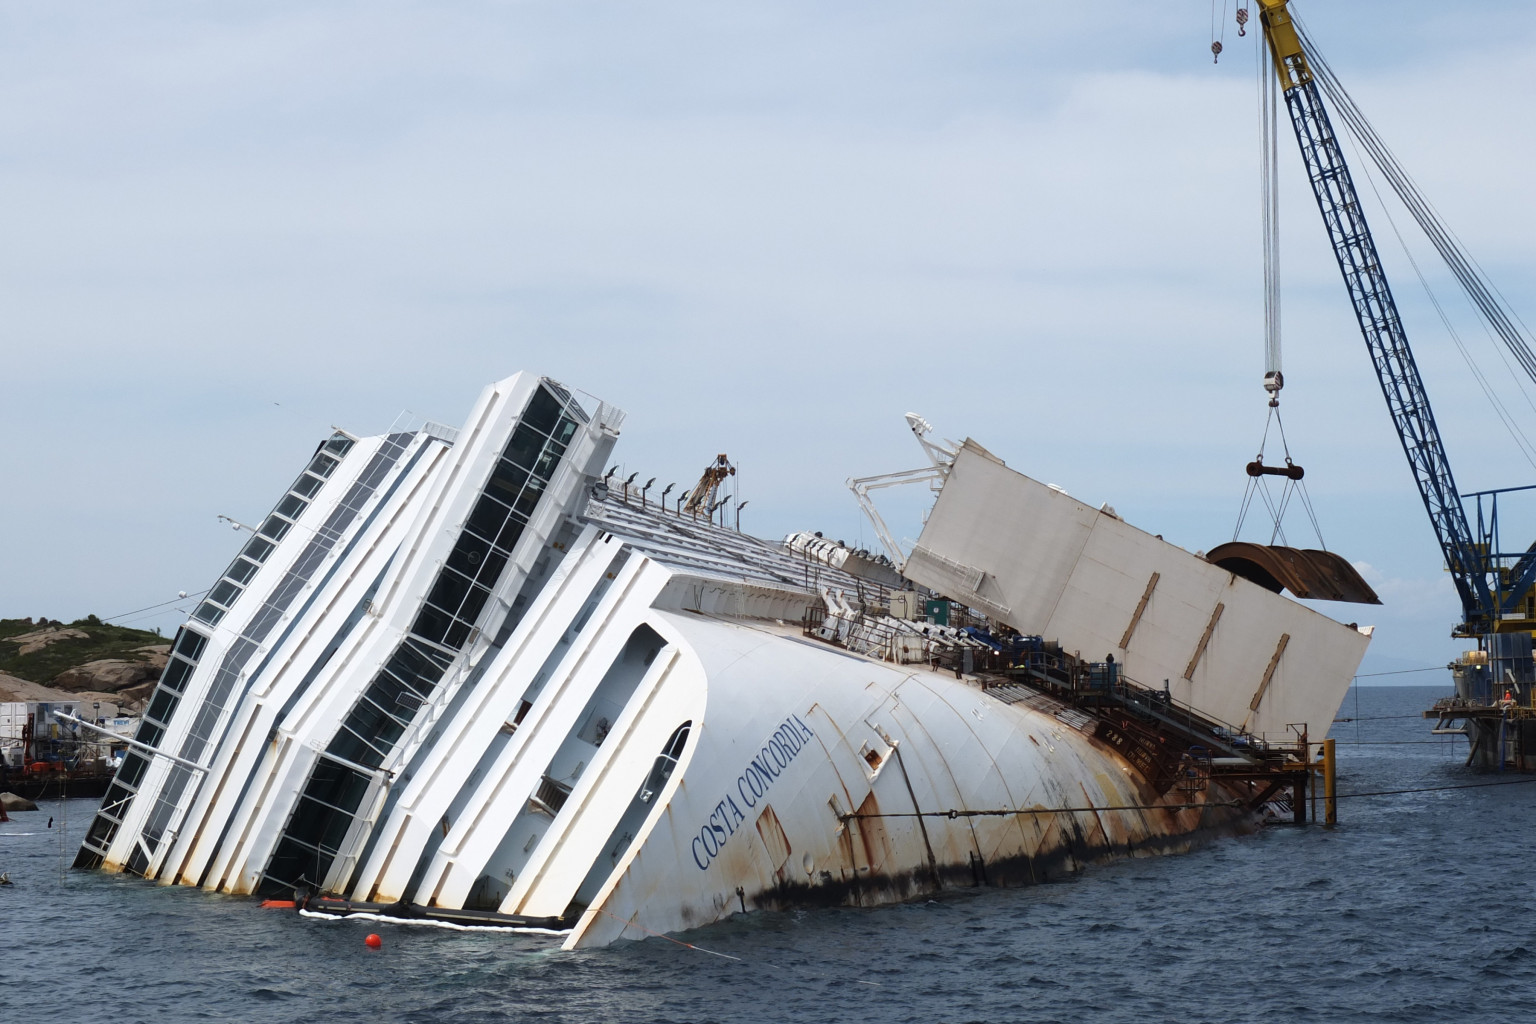 Costa Concordia Wreckage To Be Raised In September As Italy Attempts Biggest Passenger Ship